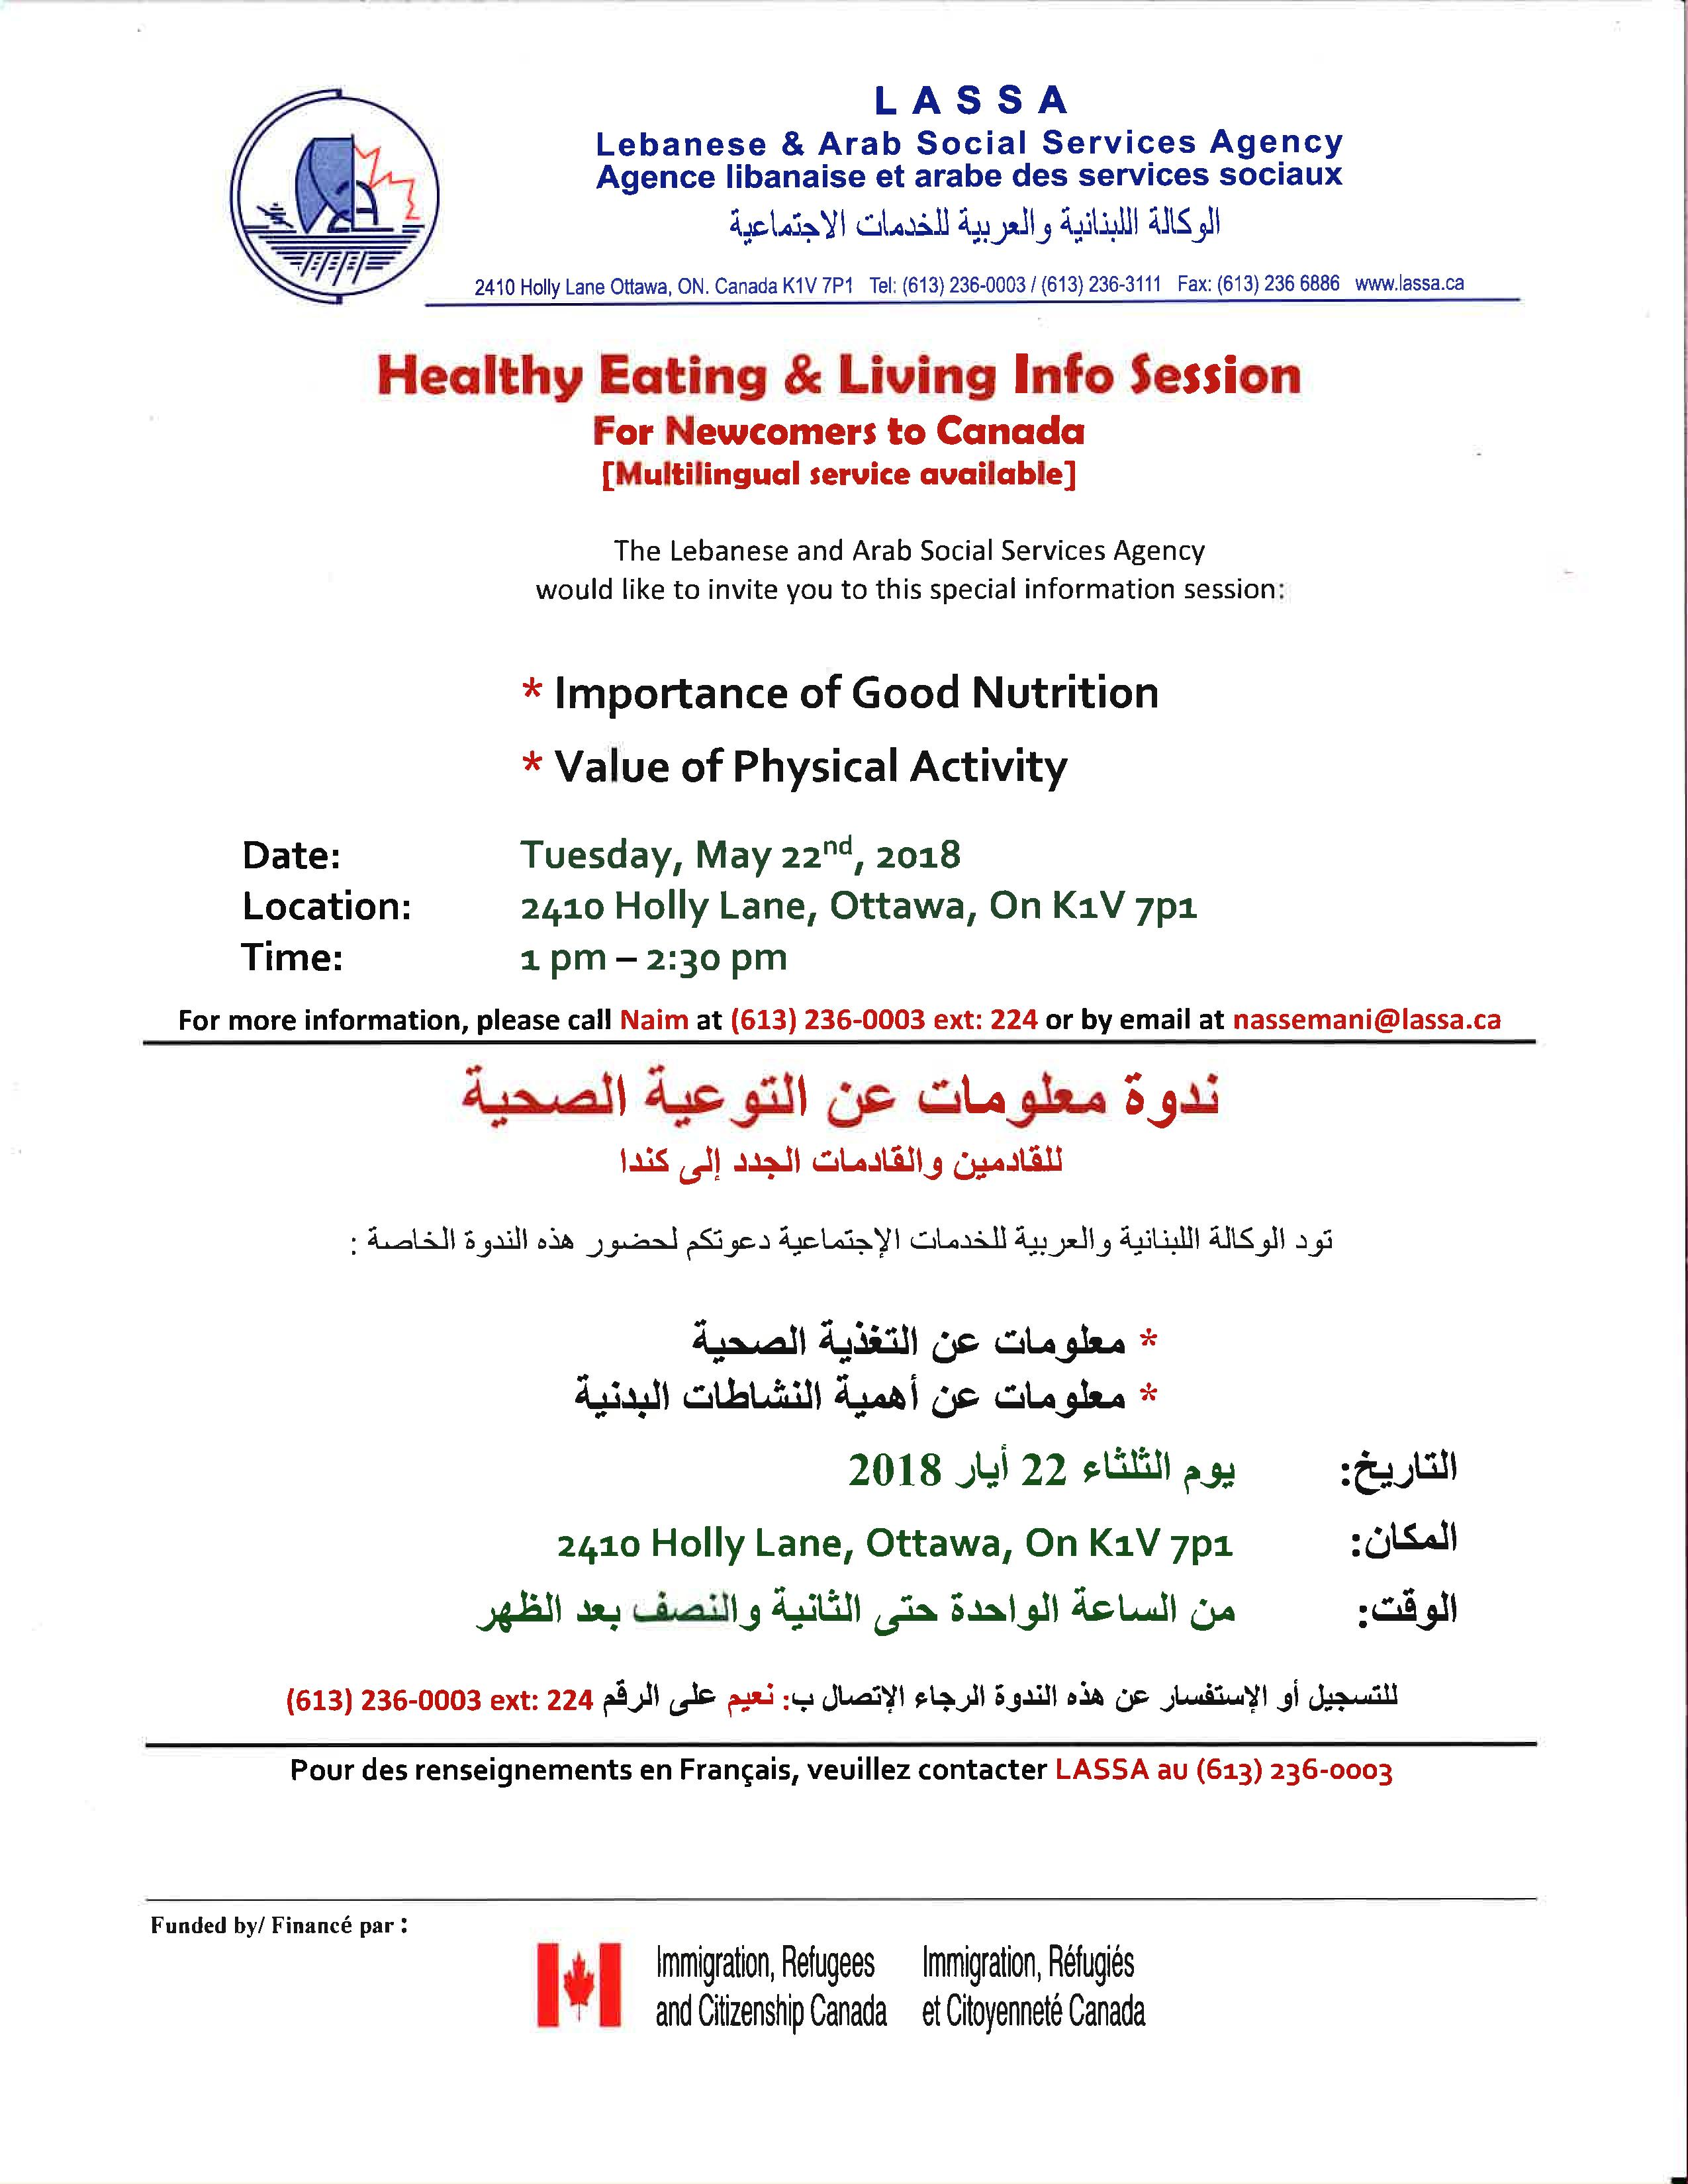 Healthy Eating & Living Info Session @ LASSA | Ottawa | Ontario | Canada